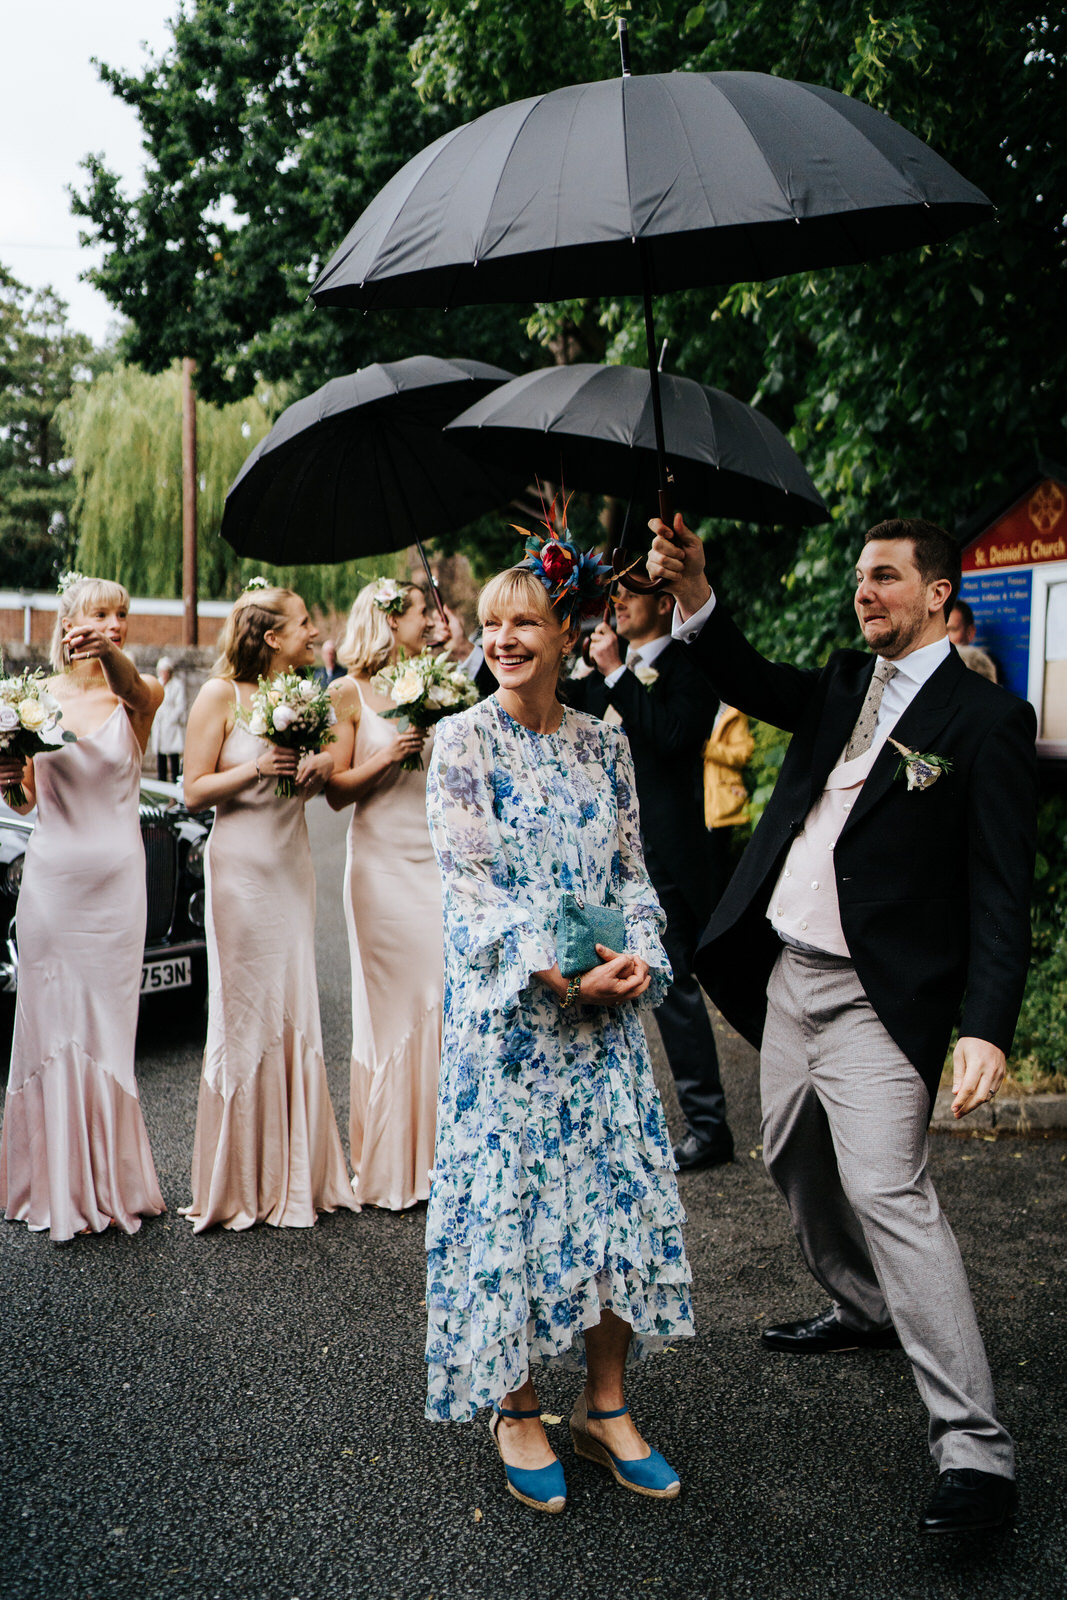 Mother of the bride and bridesmaids stand, smiling, underneath umbrellas as they wait for the bride to exit her car